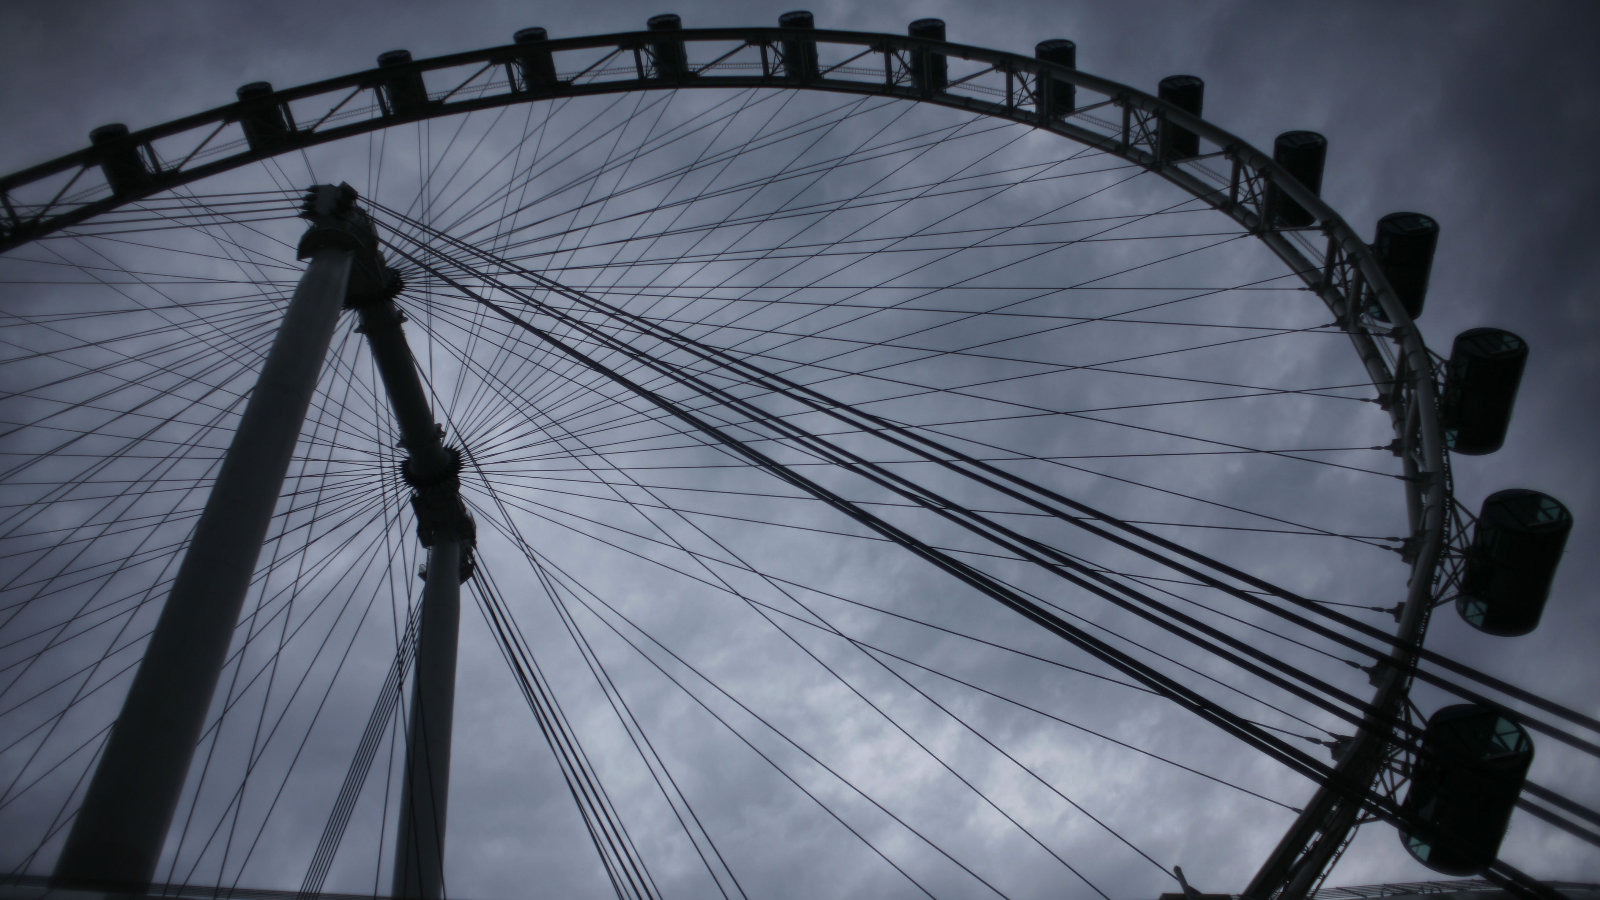 Click here to read The World's Tallest Ferris Wheel Towers Over Singapore Like the Eye of Sauron